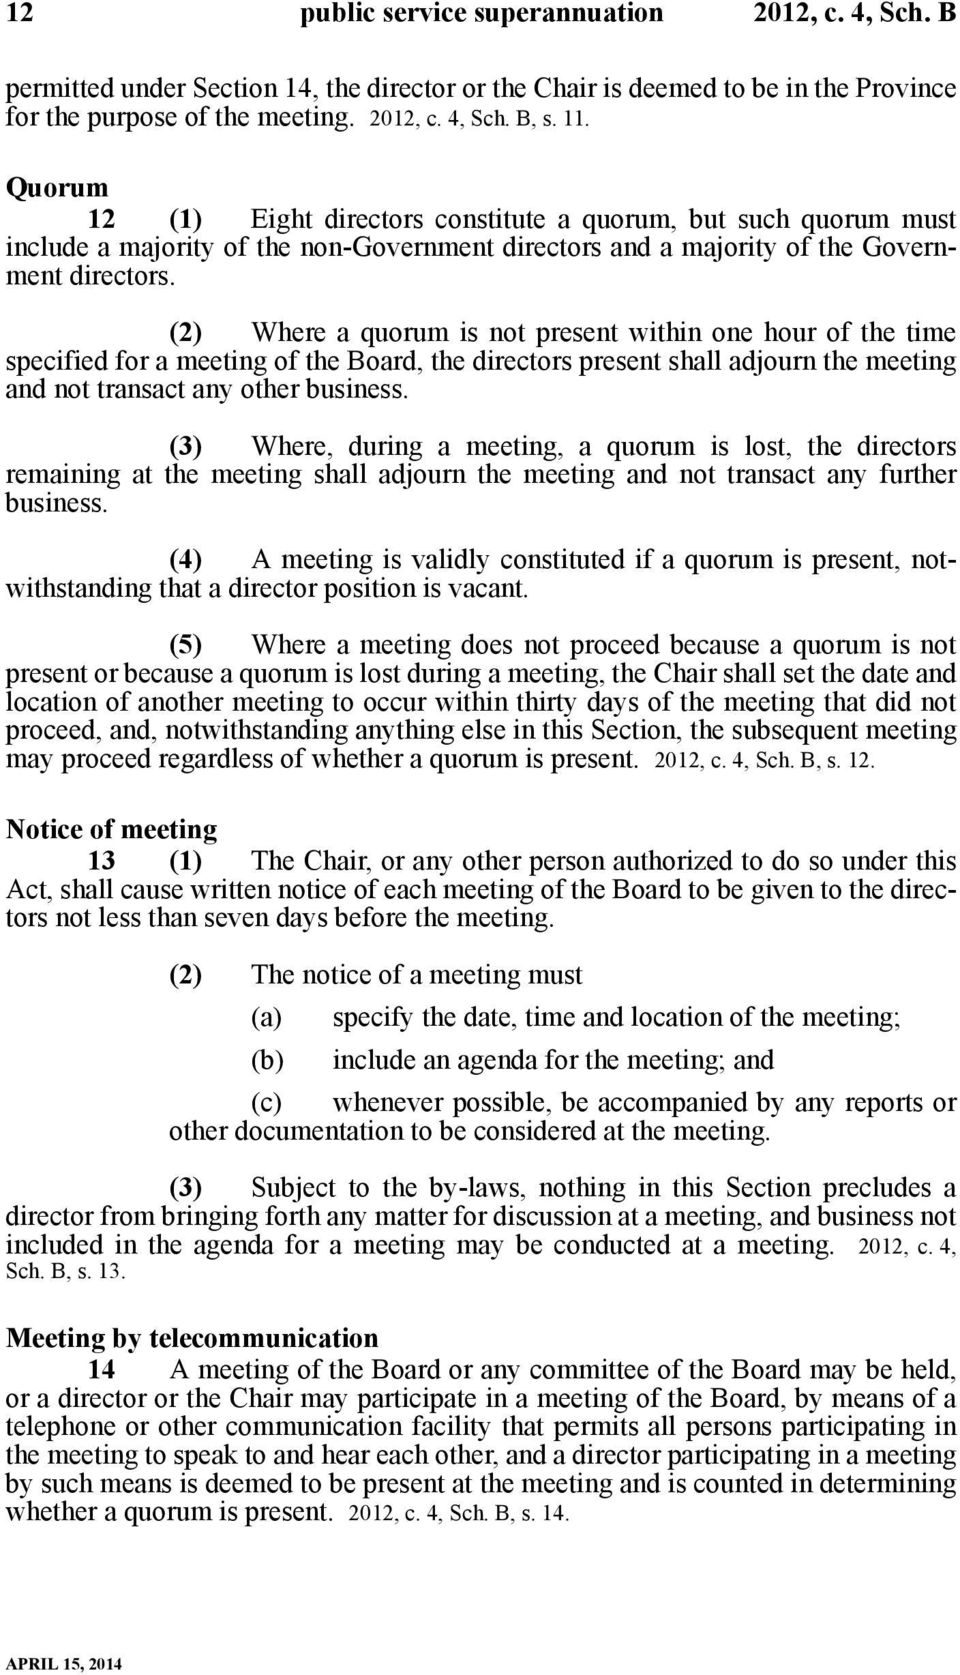 (2) Where a quorum is not present within one hour of the time specified for a meeting of the Board, the directors present shall adjourn the meeting and not transact any other business.